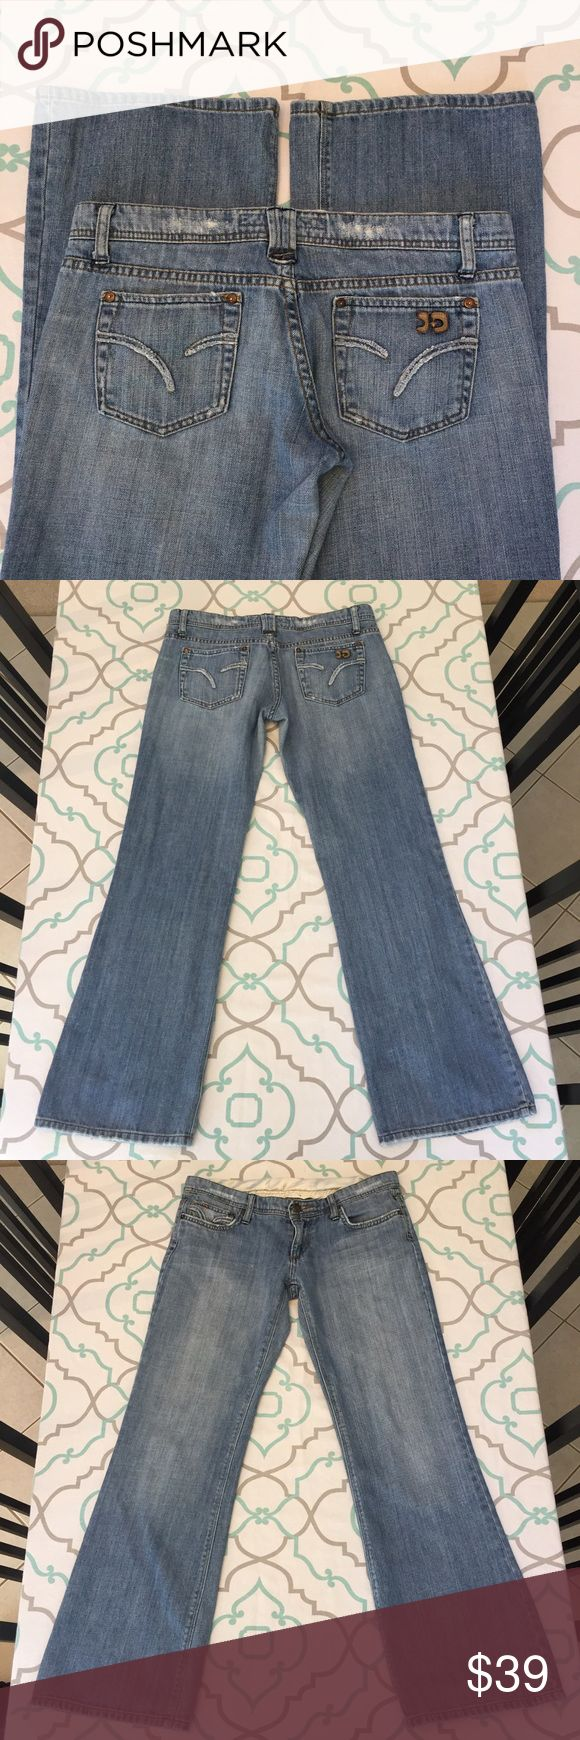 """💙💘Joe's Jeans! 29 7/8 Old School 100% Cotton💘💙 💙💘Joe's Jeans. Light Medium Blue Wash. 100% cotton for that old school look feel and vibe. Perfect with your favorite vintage rock tee or party top. No stretch. Light Fading. Light distressing. Very Light Fray. Low 7"""" rise. 30.5"""" inseam. 15.75"""" flat across back. Ask me any questions!💘💙 Joe's Jeans Jeans Flare & Wide Leg"""